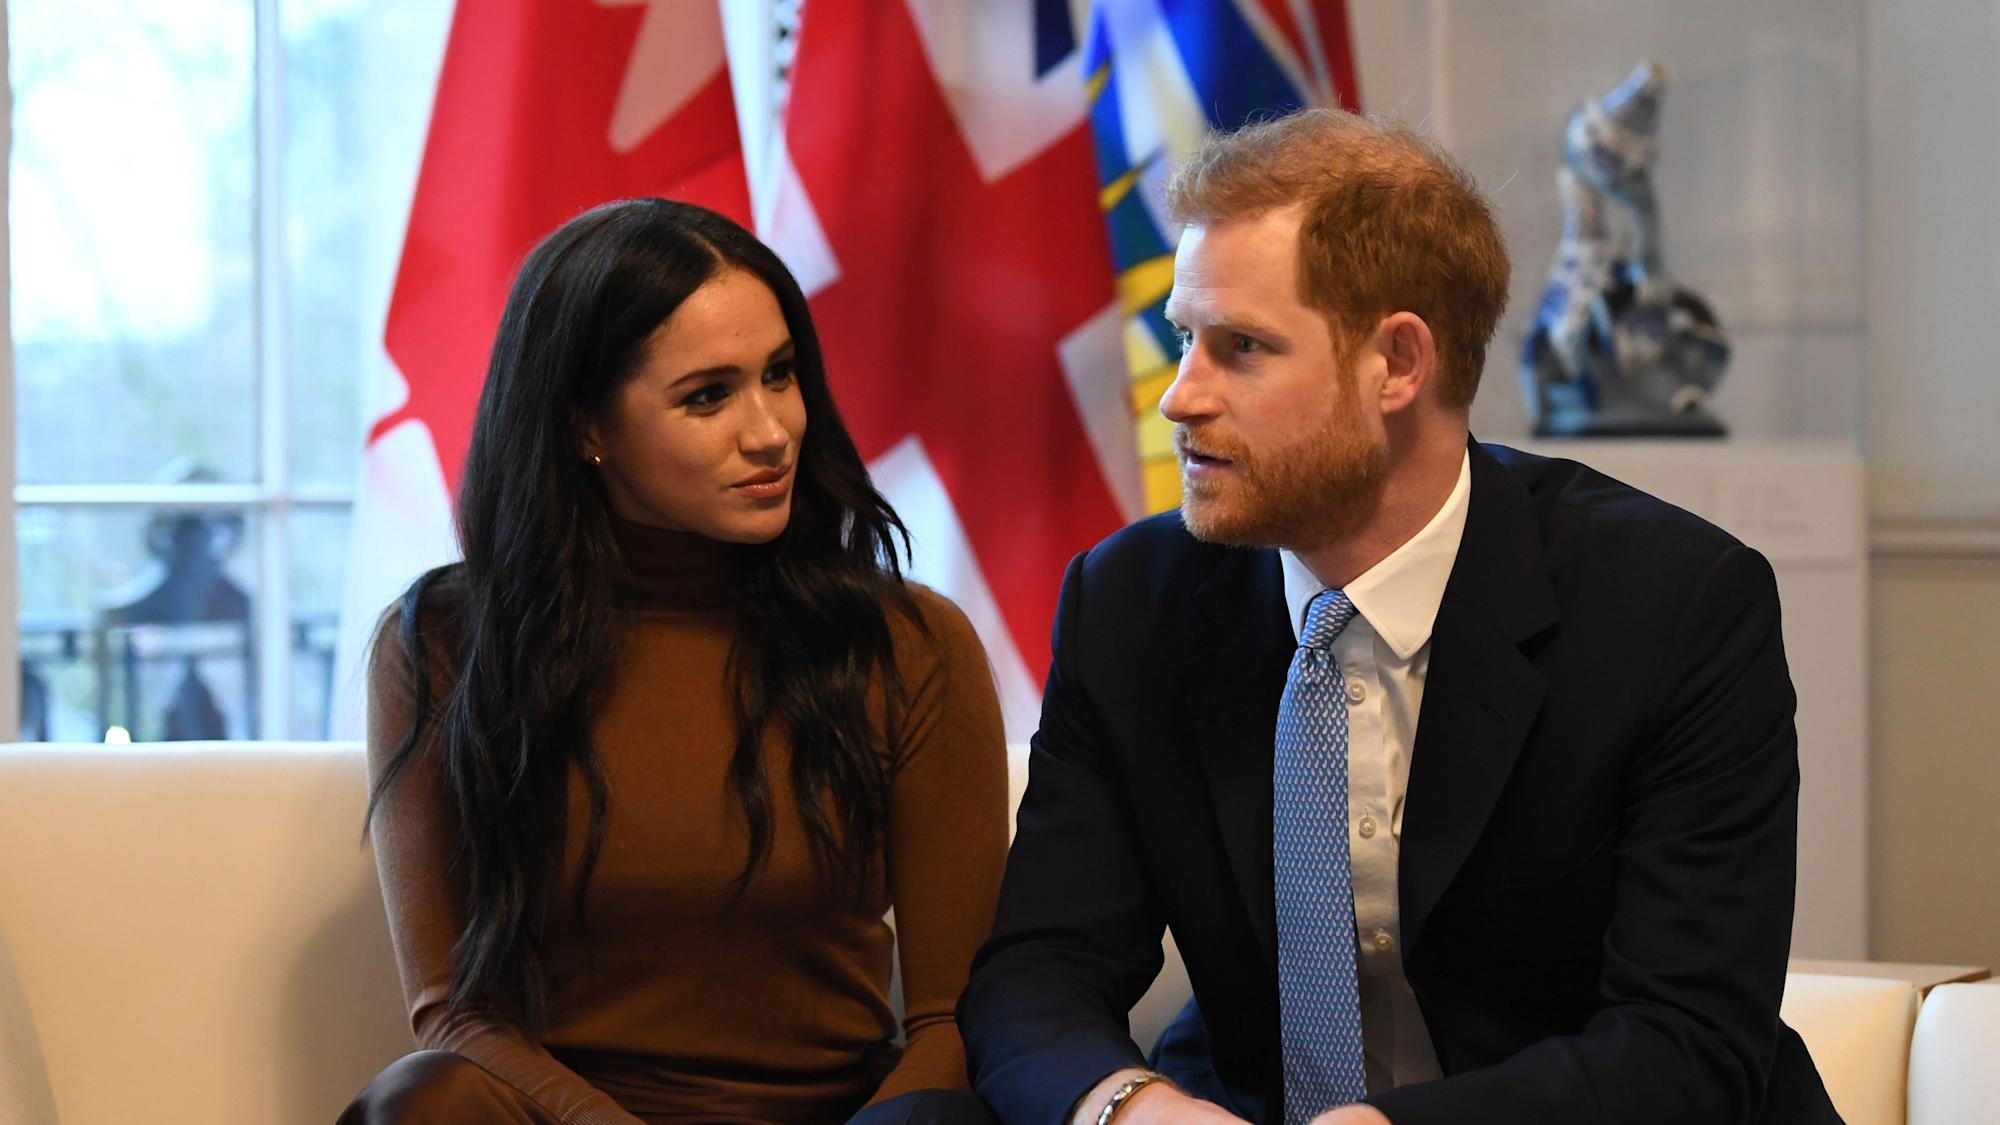 Meghan and Harry's allegations taken 'very seriously' by royal family